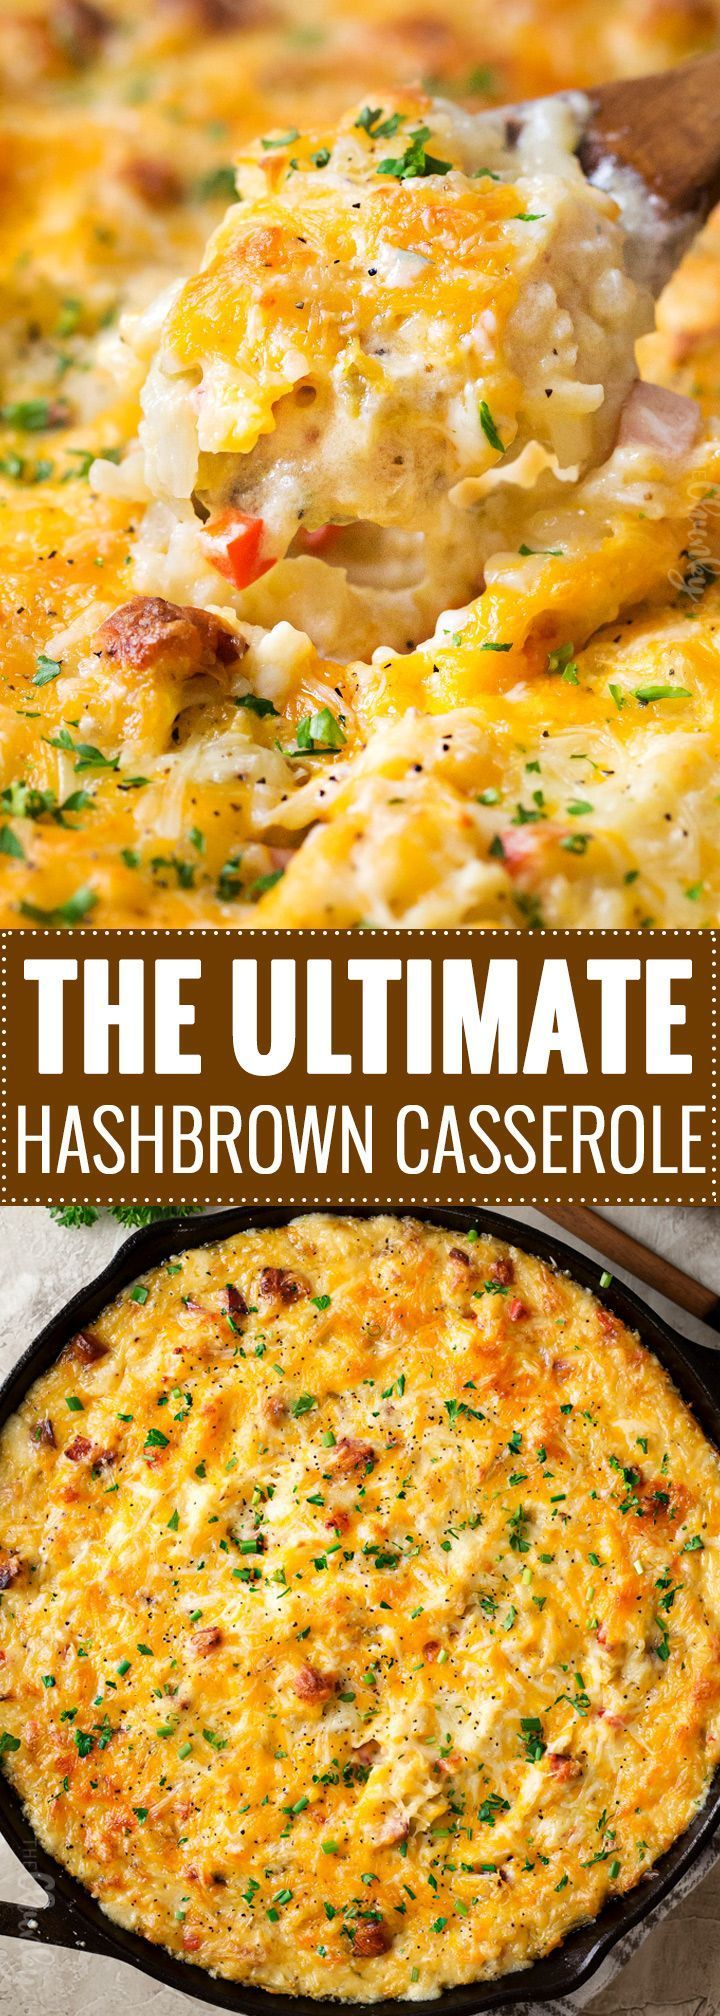 """The Ultimate Hashbrown Casserole 